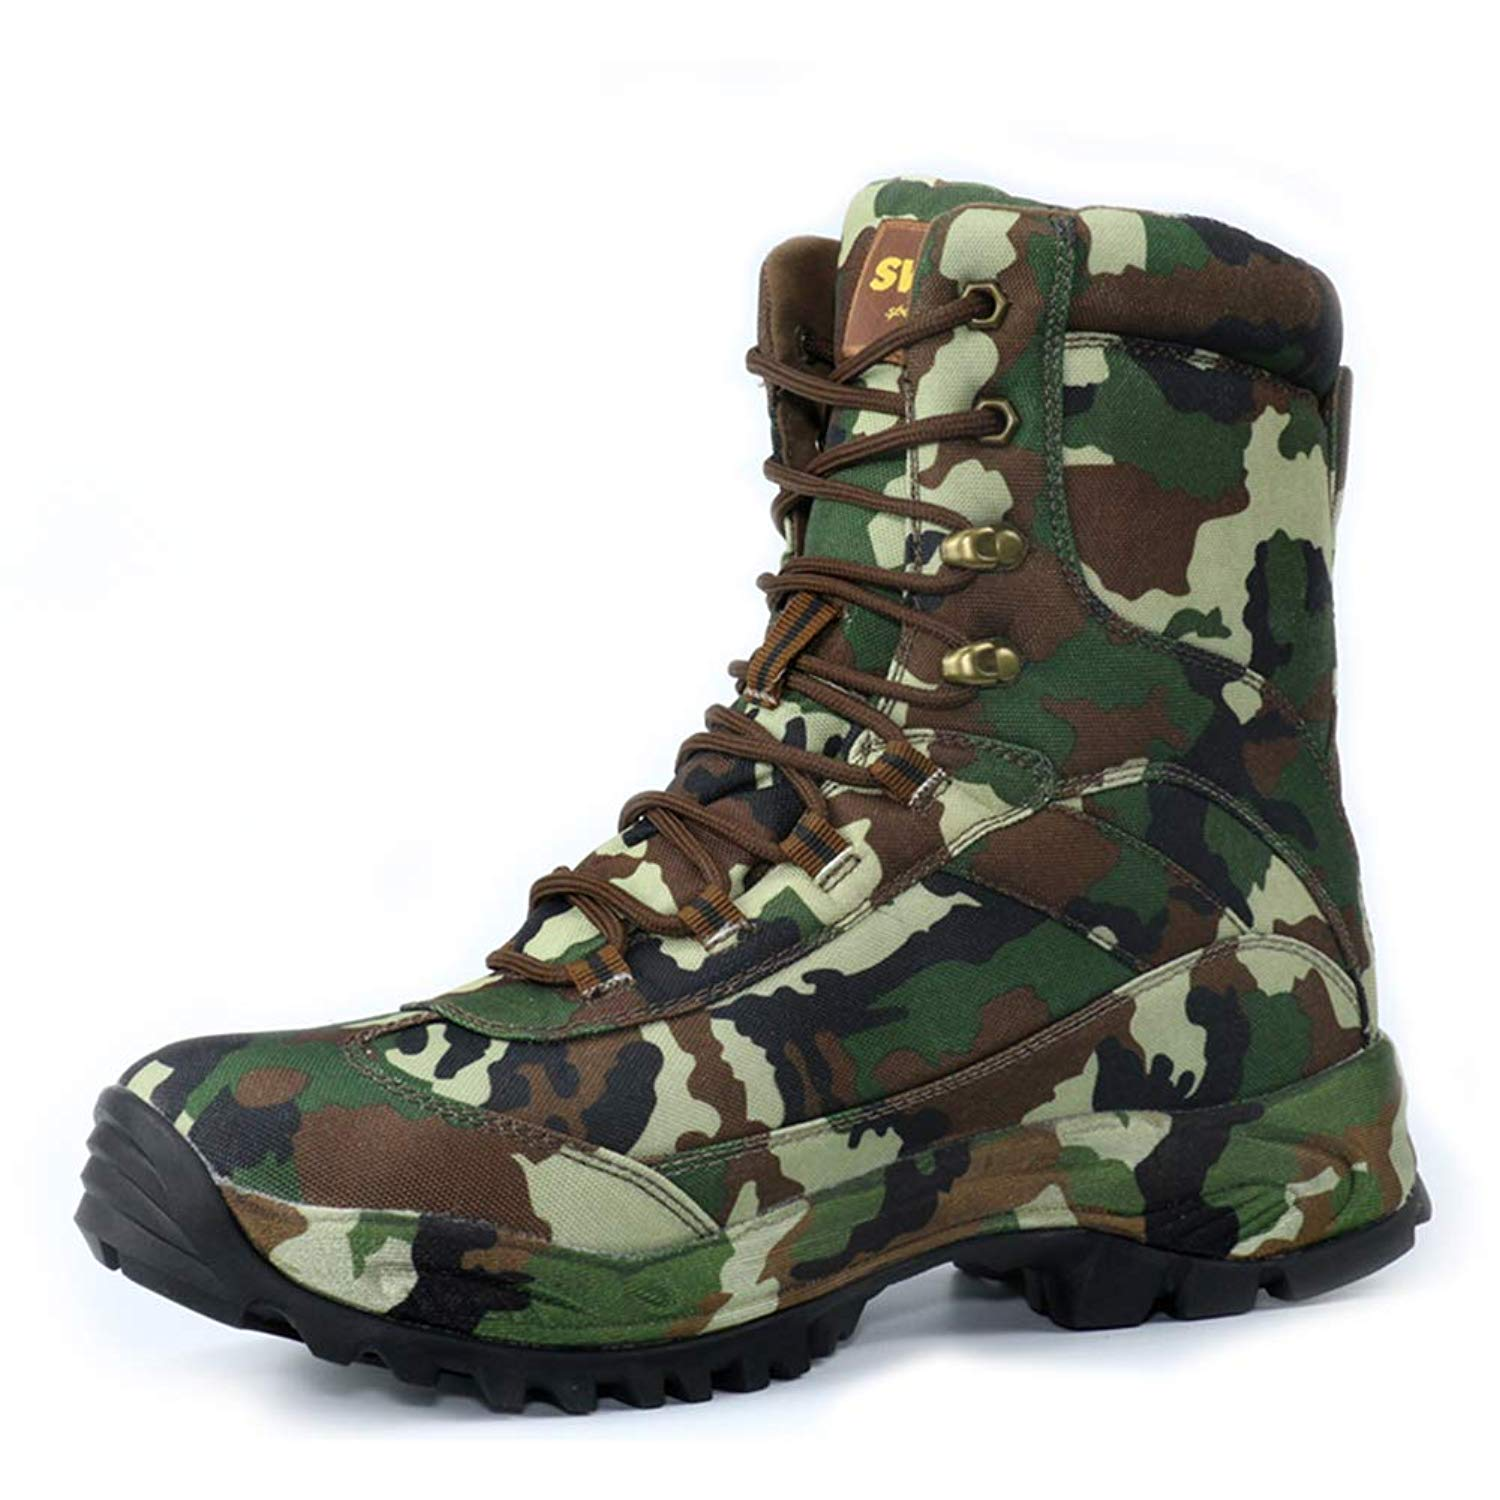 cbfcad60e2d Cheap Top Rated Hunting Boots, find Top Rated Hunting Boots deals on ...